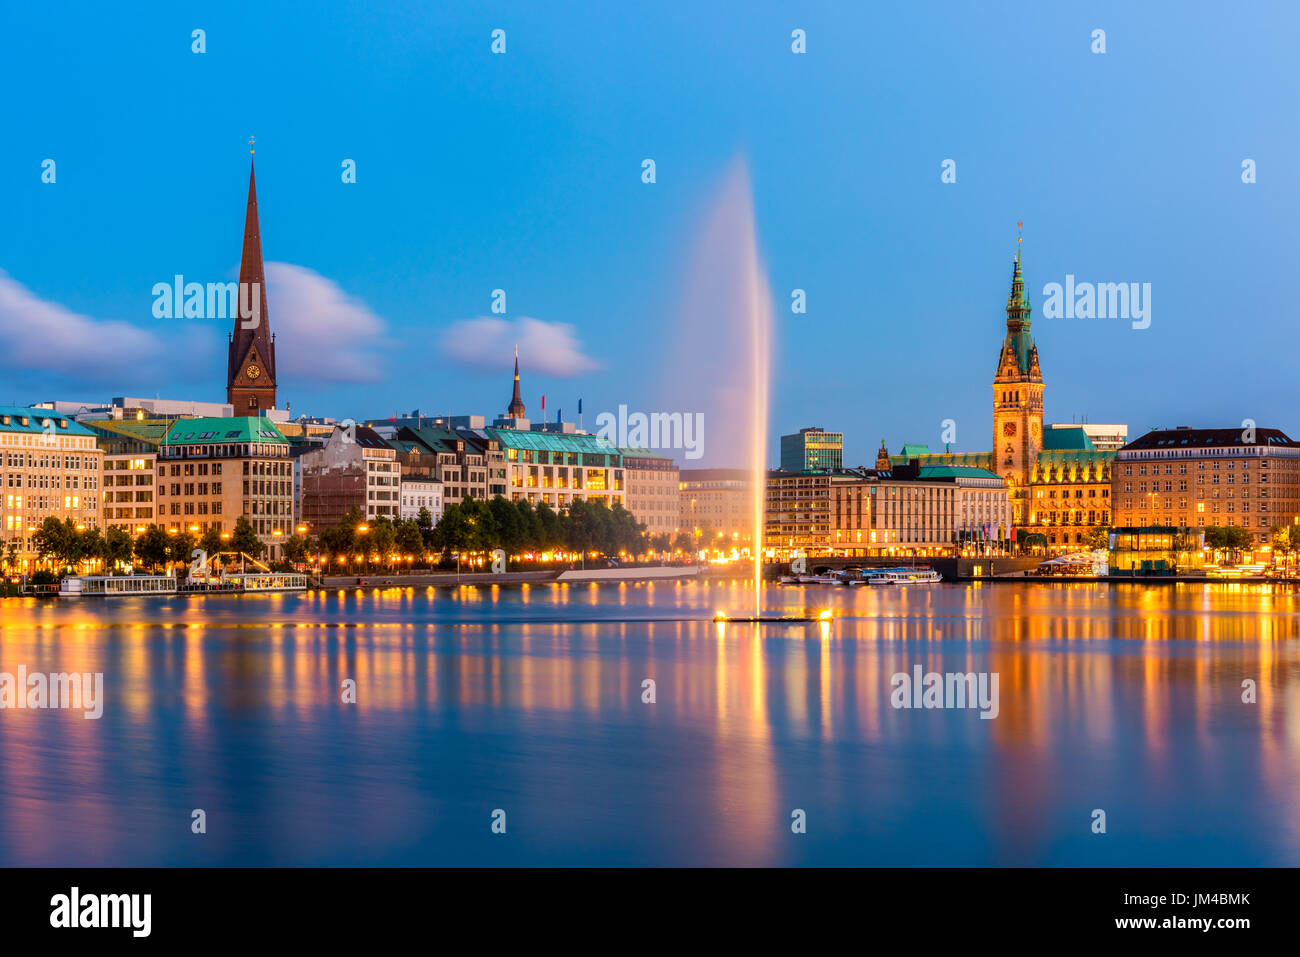 Hamburg Germany Skyline at dusk - Stock Image